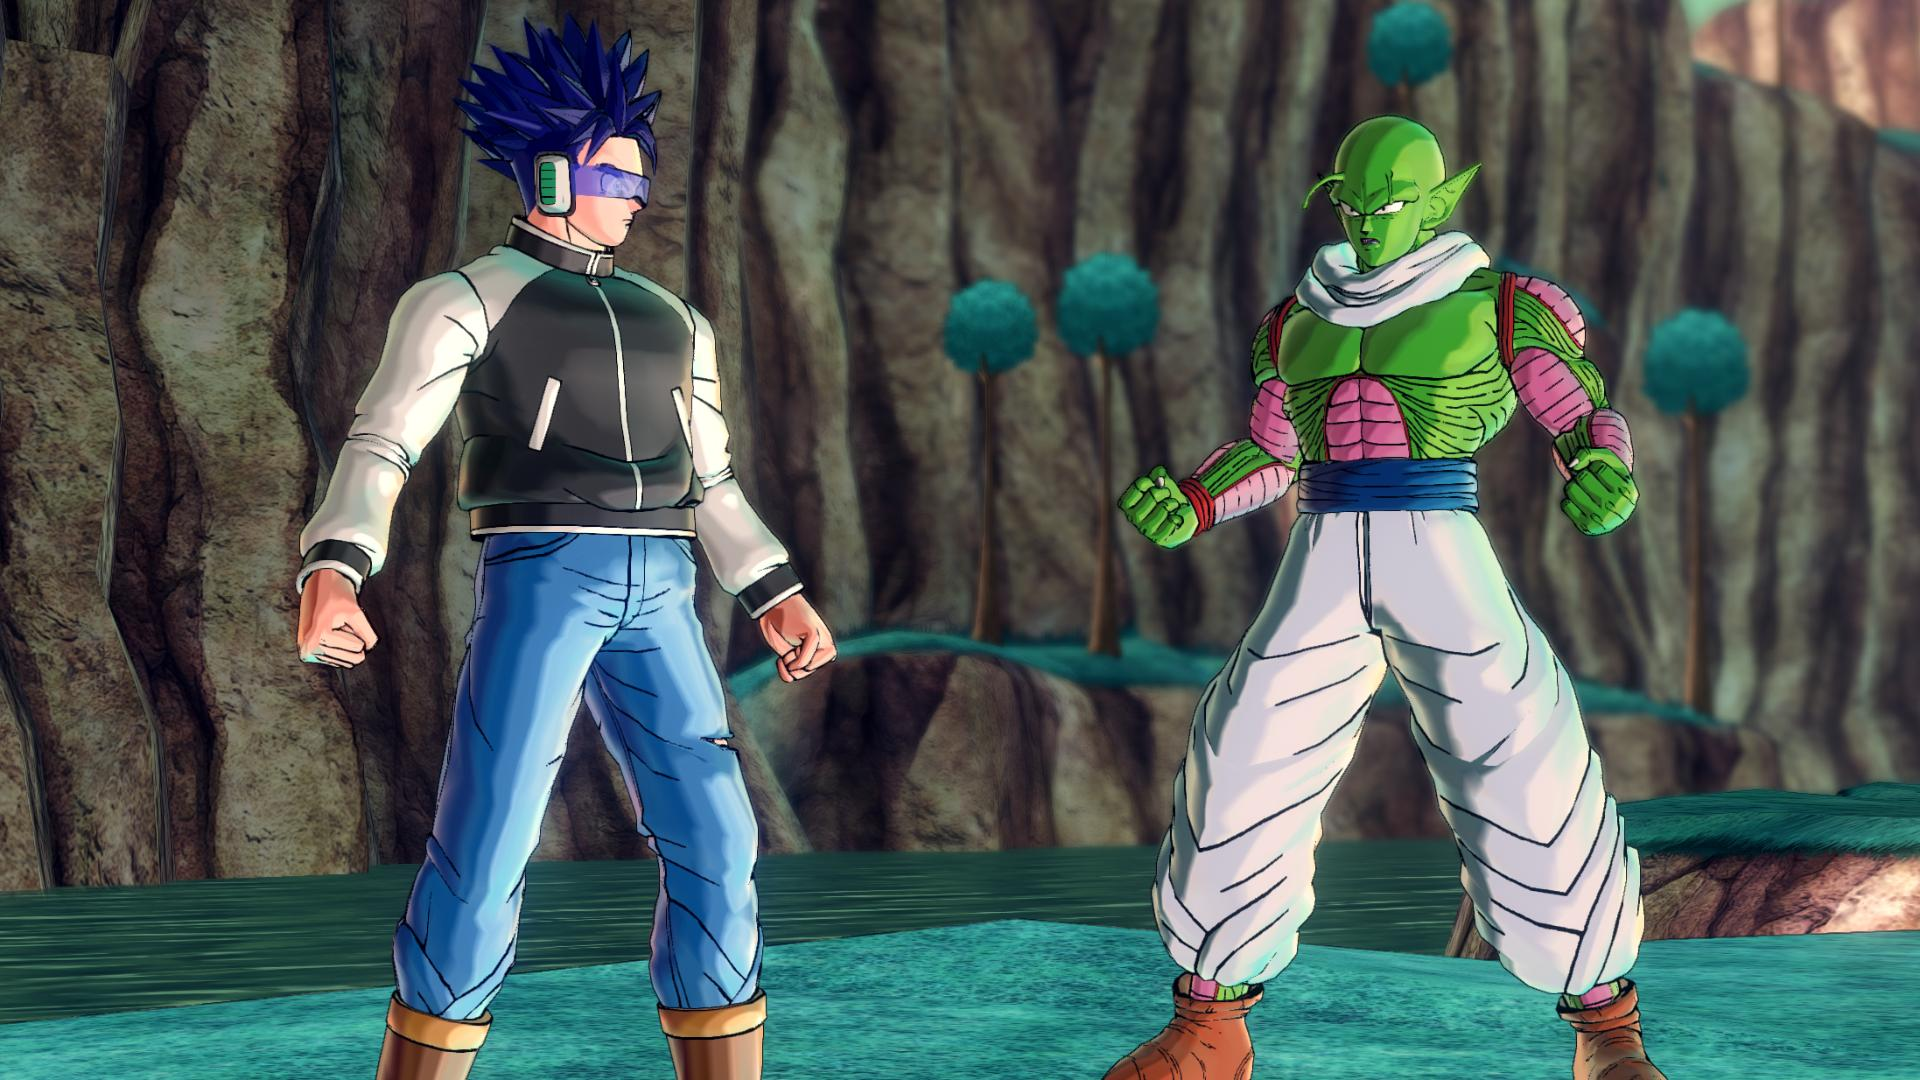 Dragon Ball Xenoverse 2 Review - It's About Time